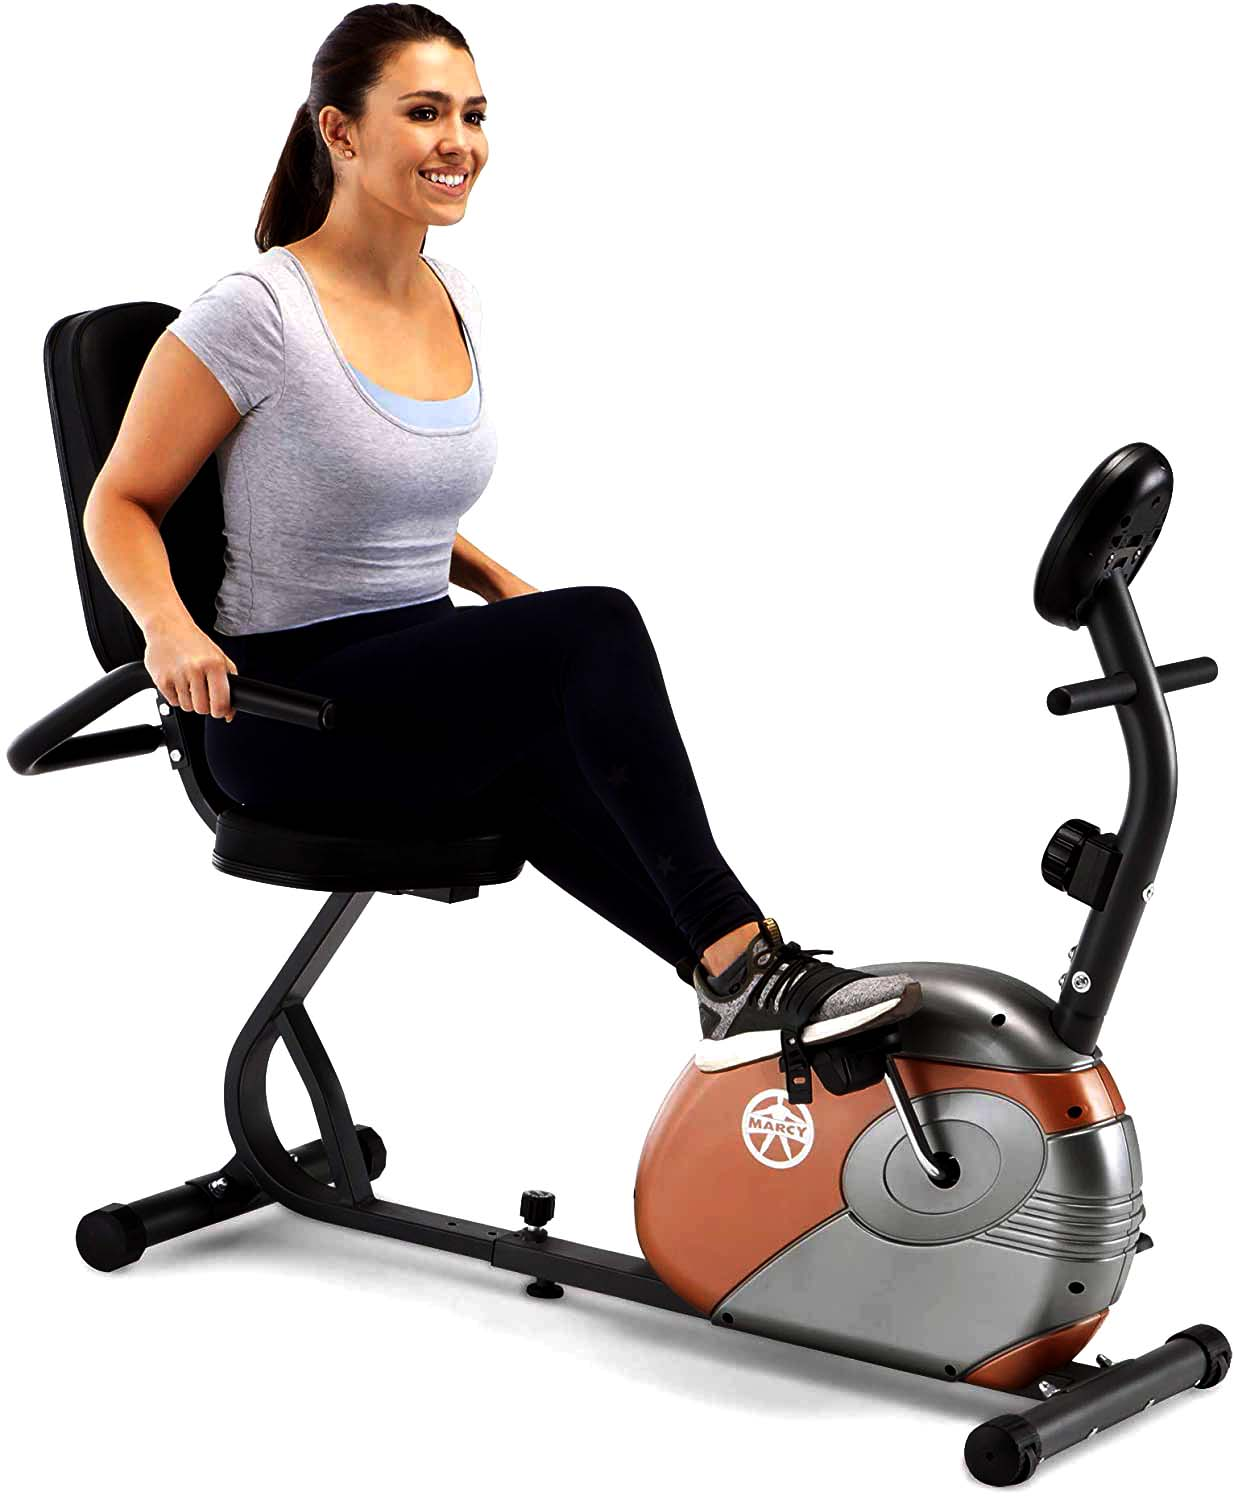 Best Stationary Bikes For Small Space